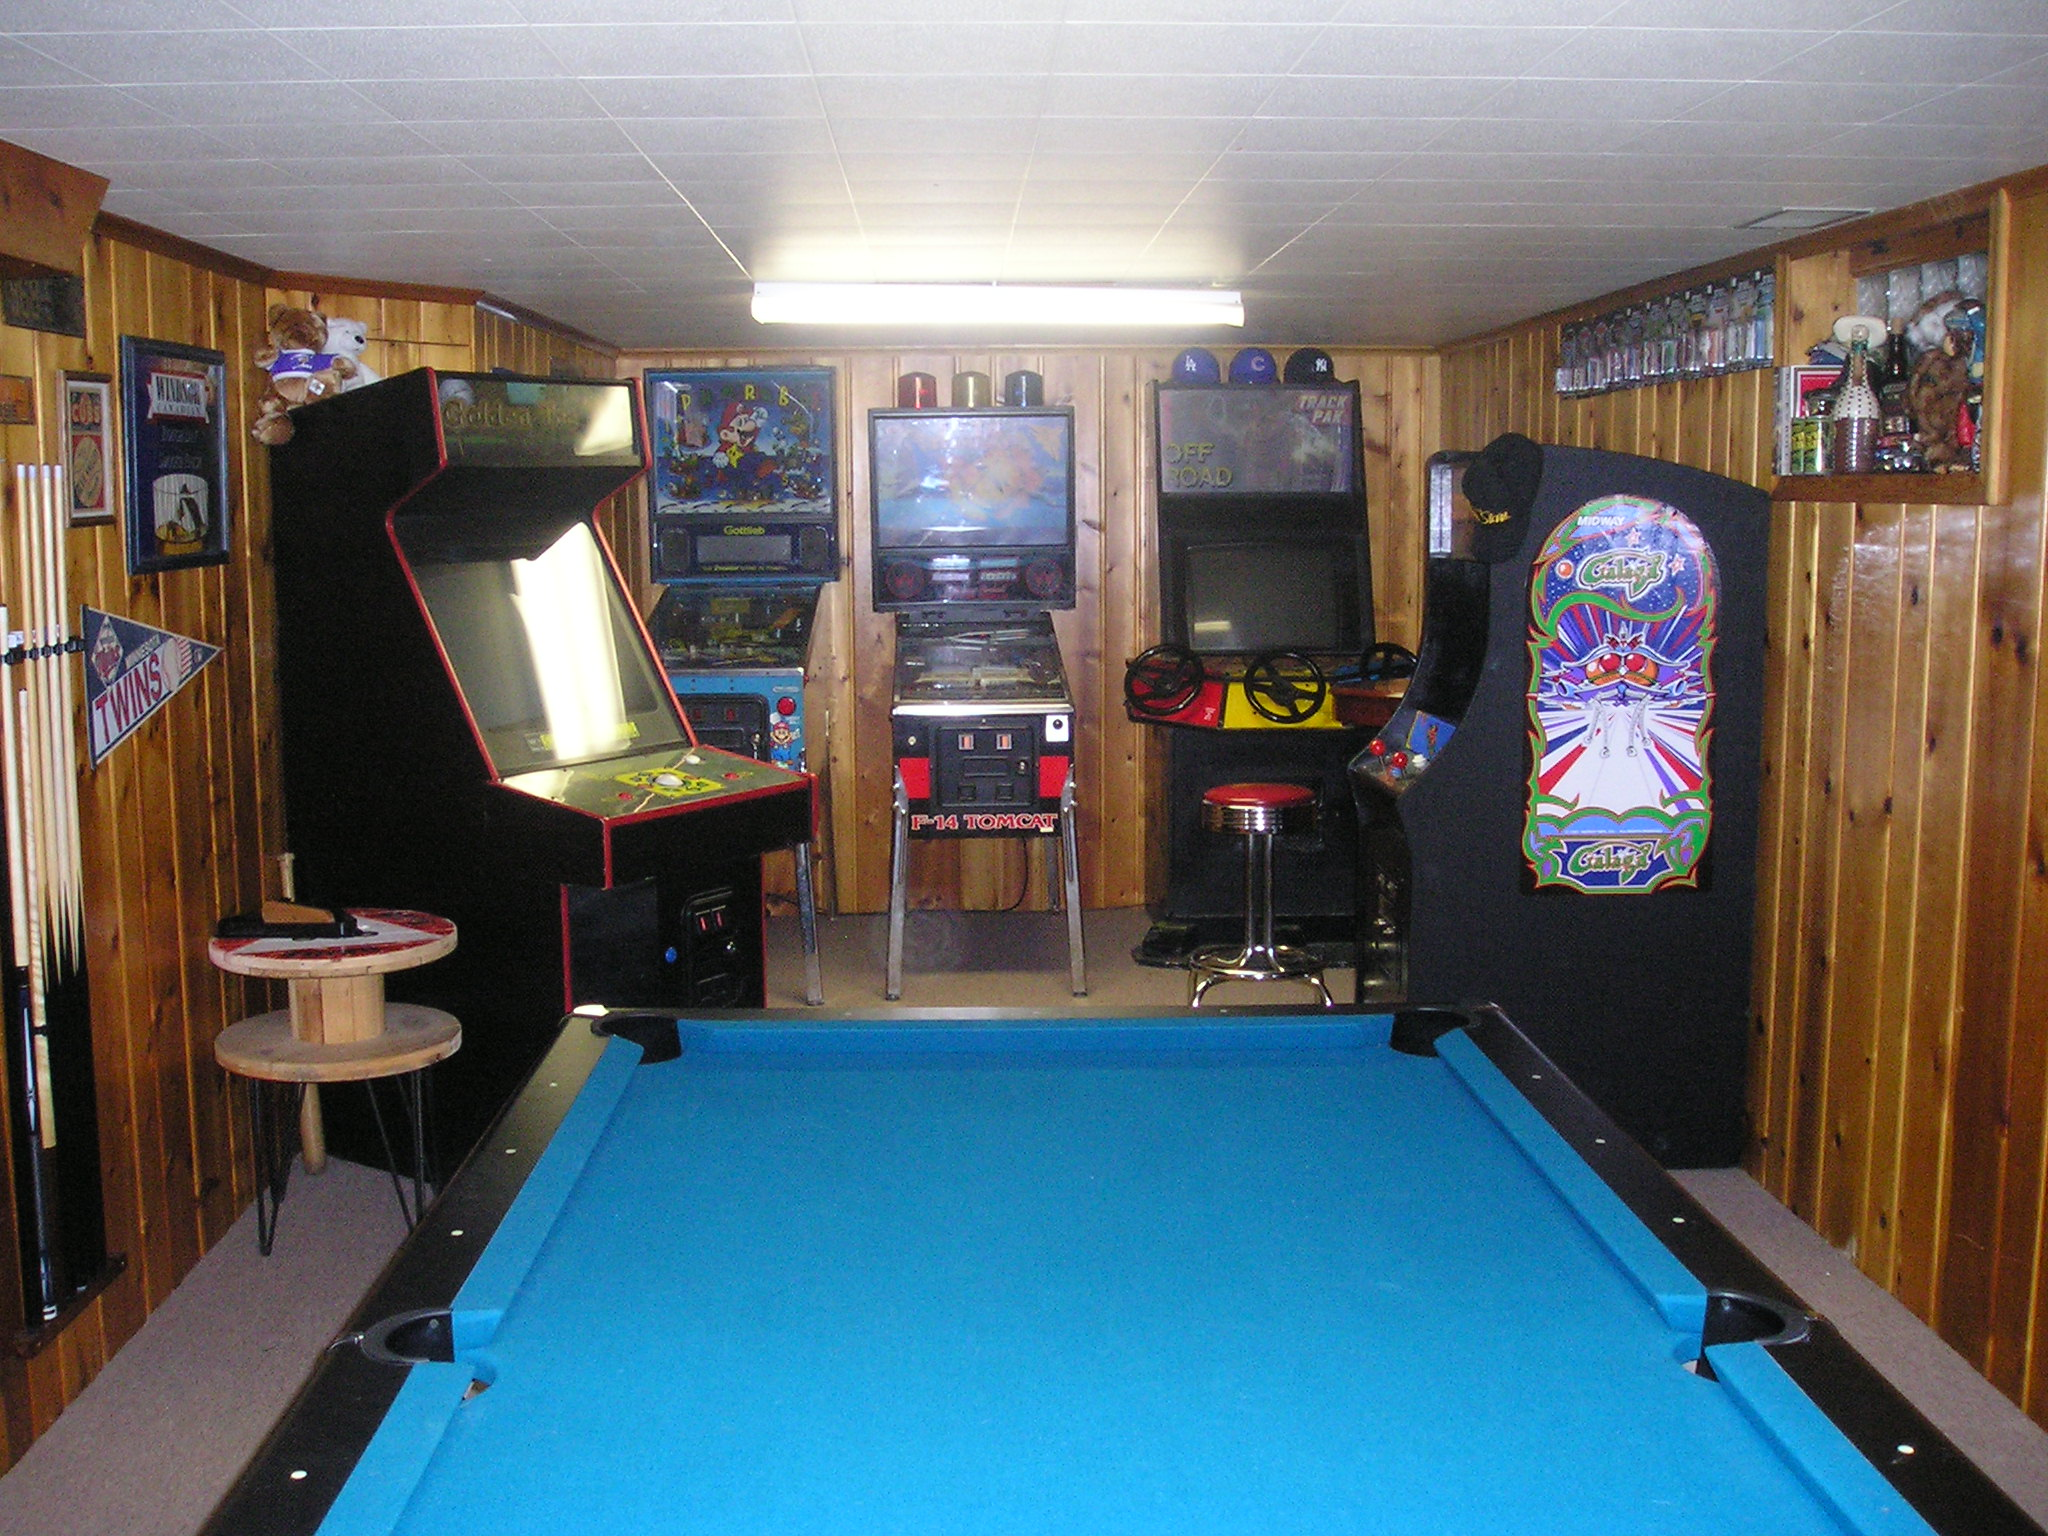 What do you guys make of this (Golden tee) - Arcade and Pinball